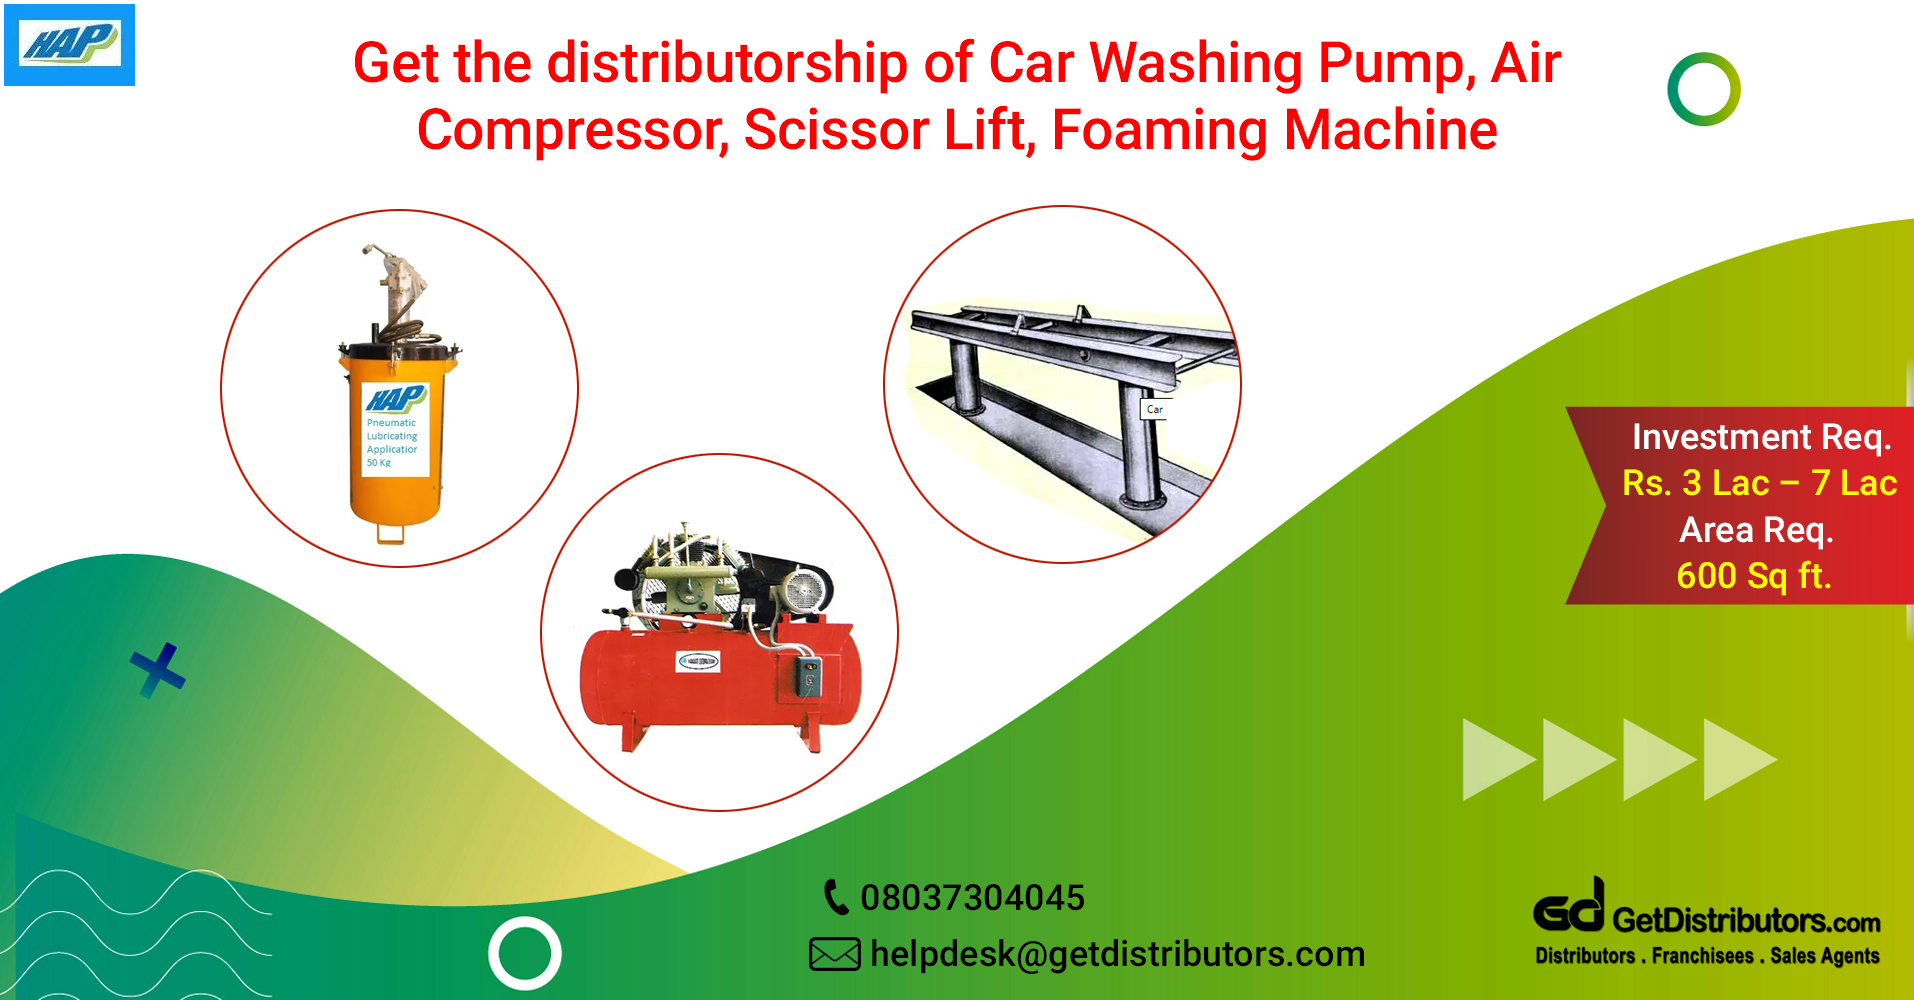 A wide range of machinery for vehicle's maintenance